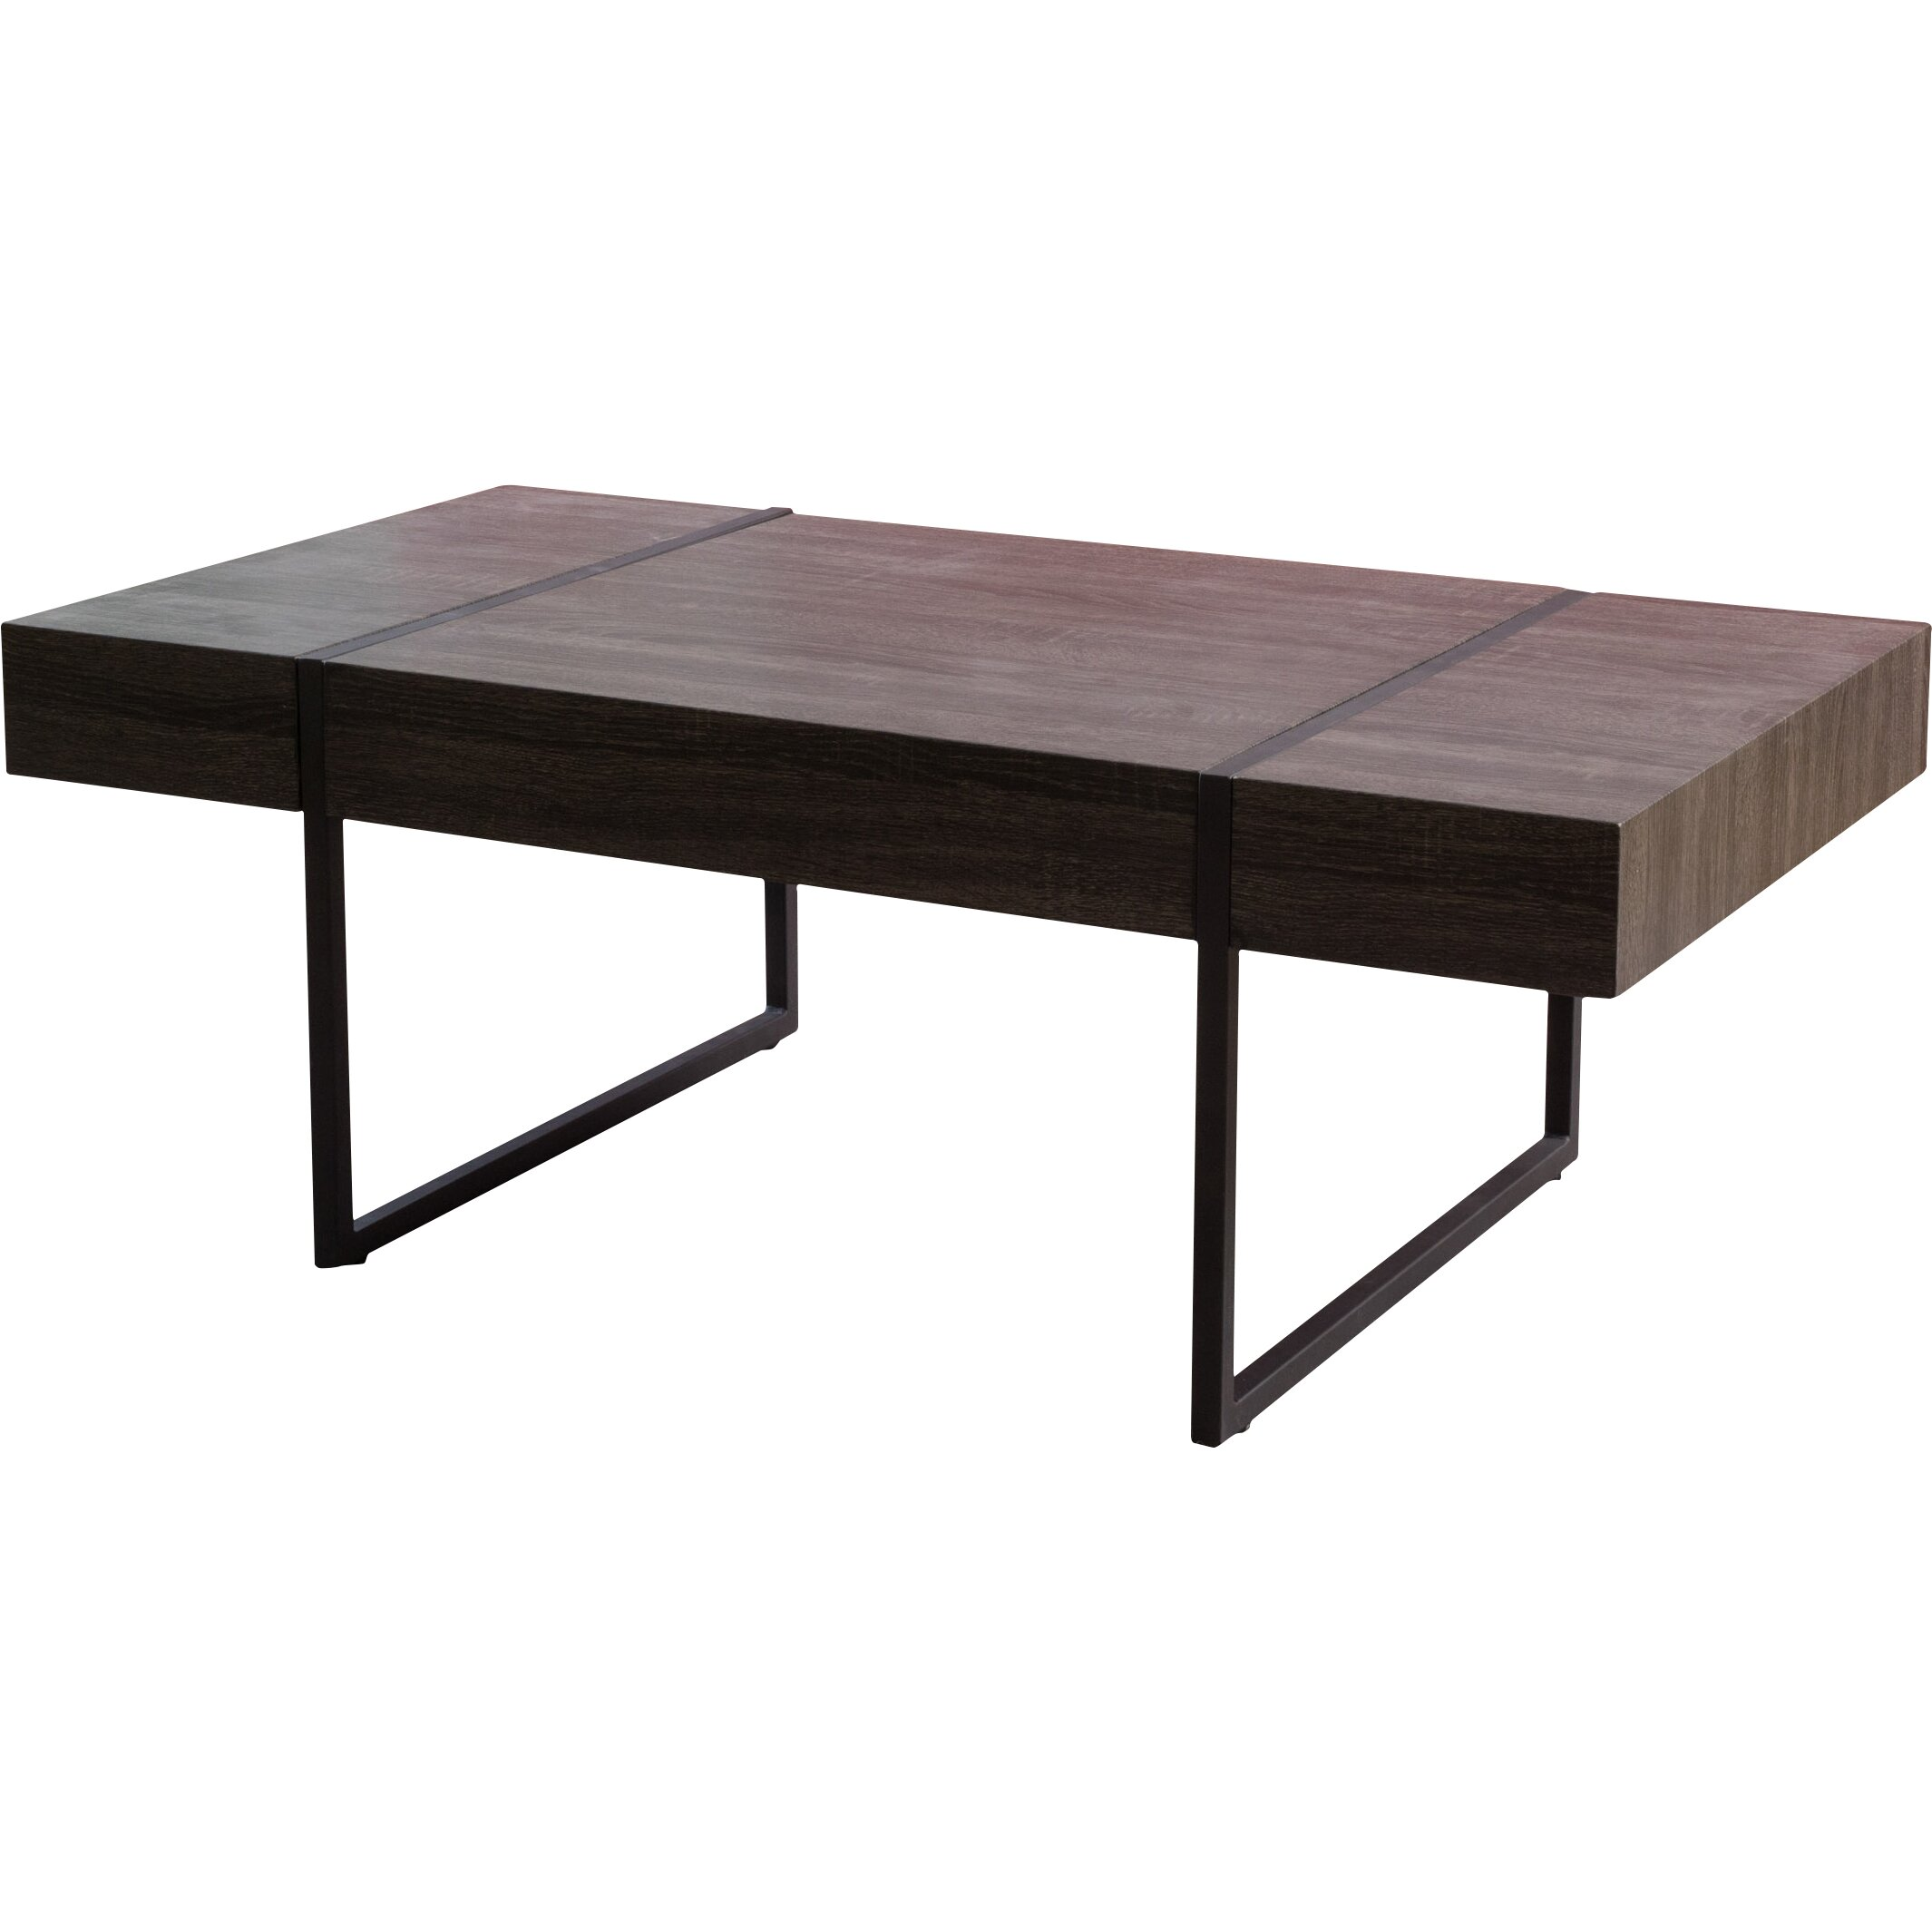 Langley street cleveland coffee table reviews wayfair for Outdoor furniture langley